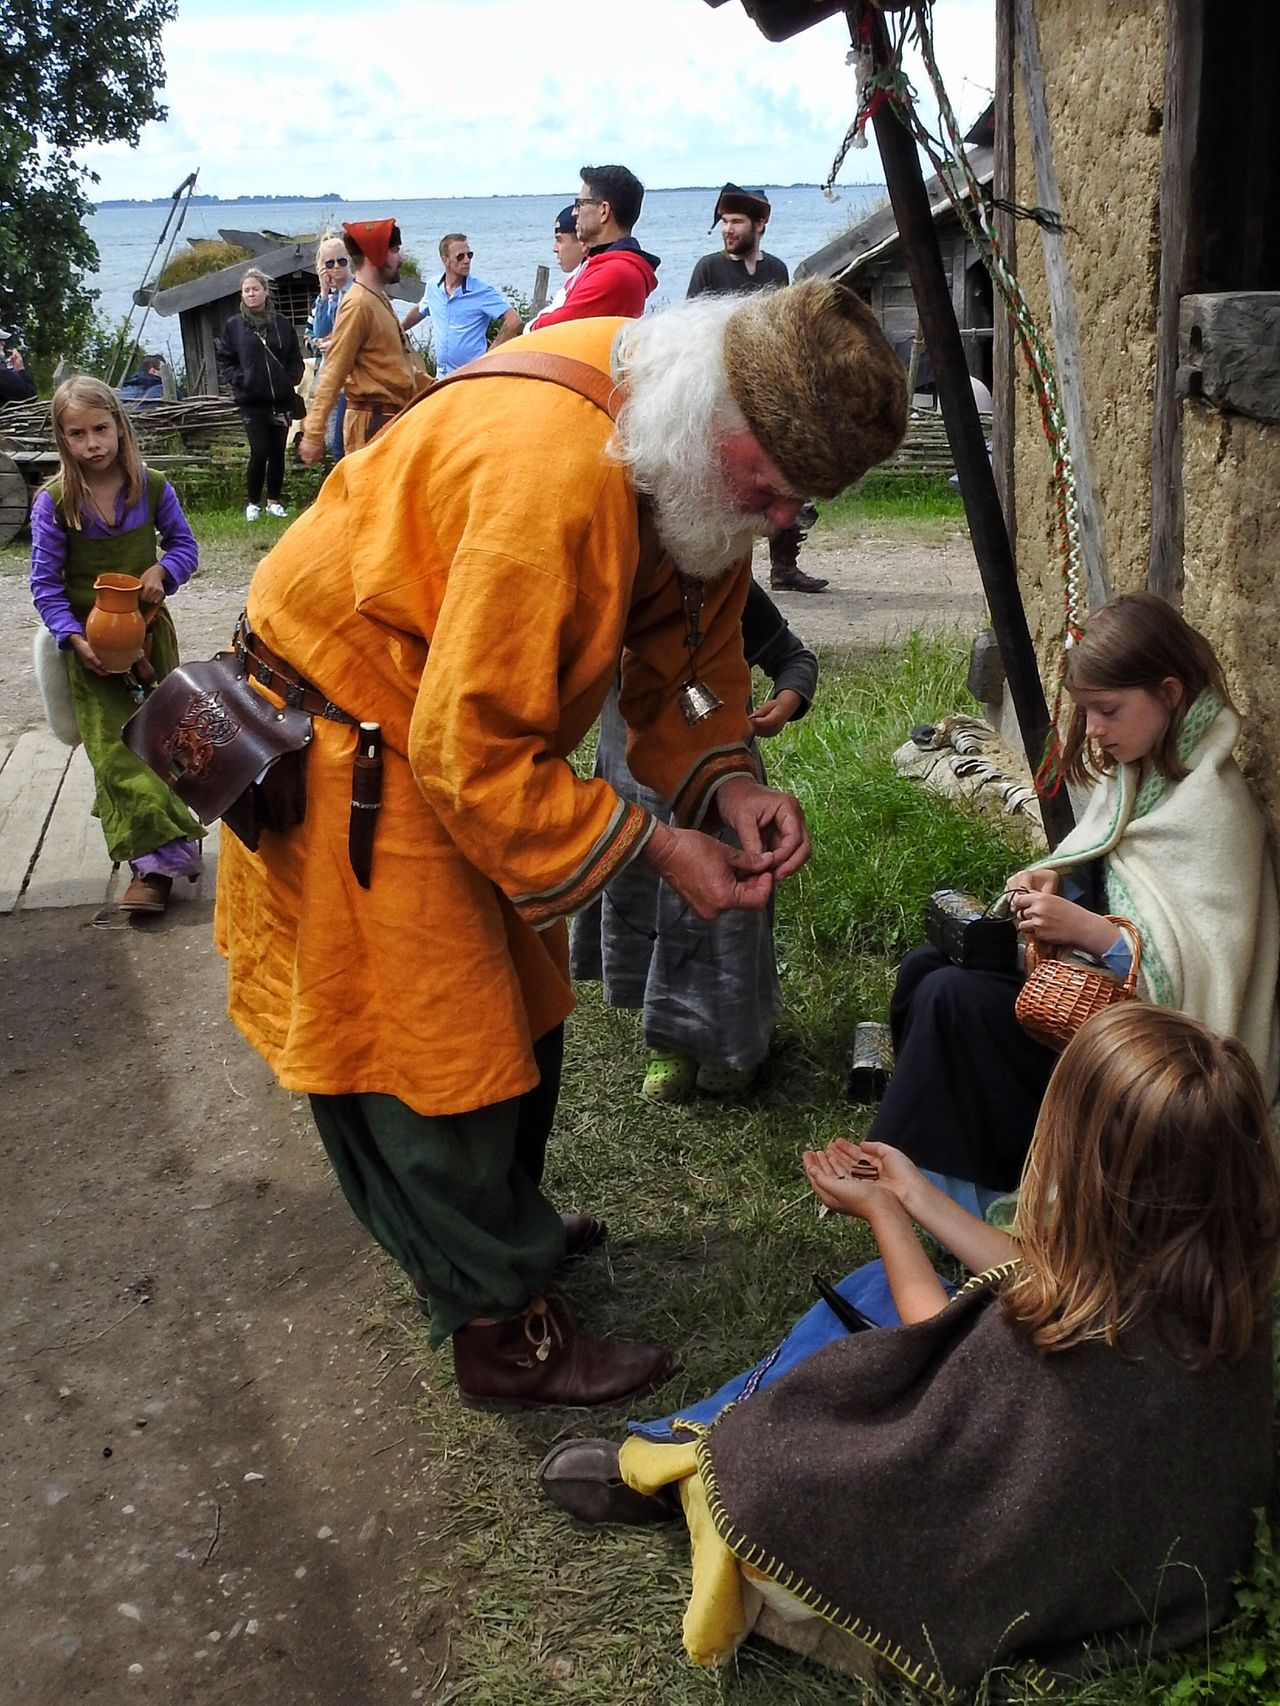 Check This Out Hanging Out Enjoying Life Colors Sweden Skåne Viking Colorful Costumes Scenic Vikings  View Medieval Medieval Architecture MedievalTown Festival Kids Children Beads Sharing  Sharing A Moment